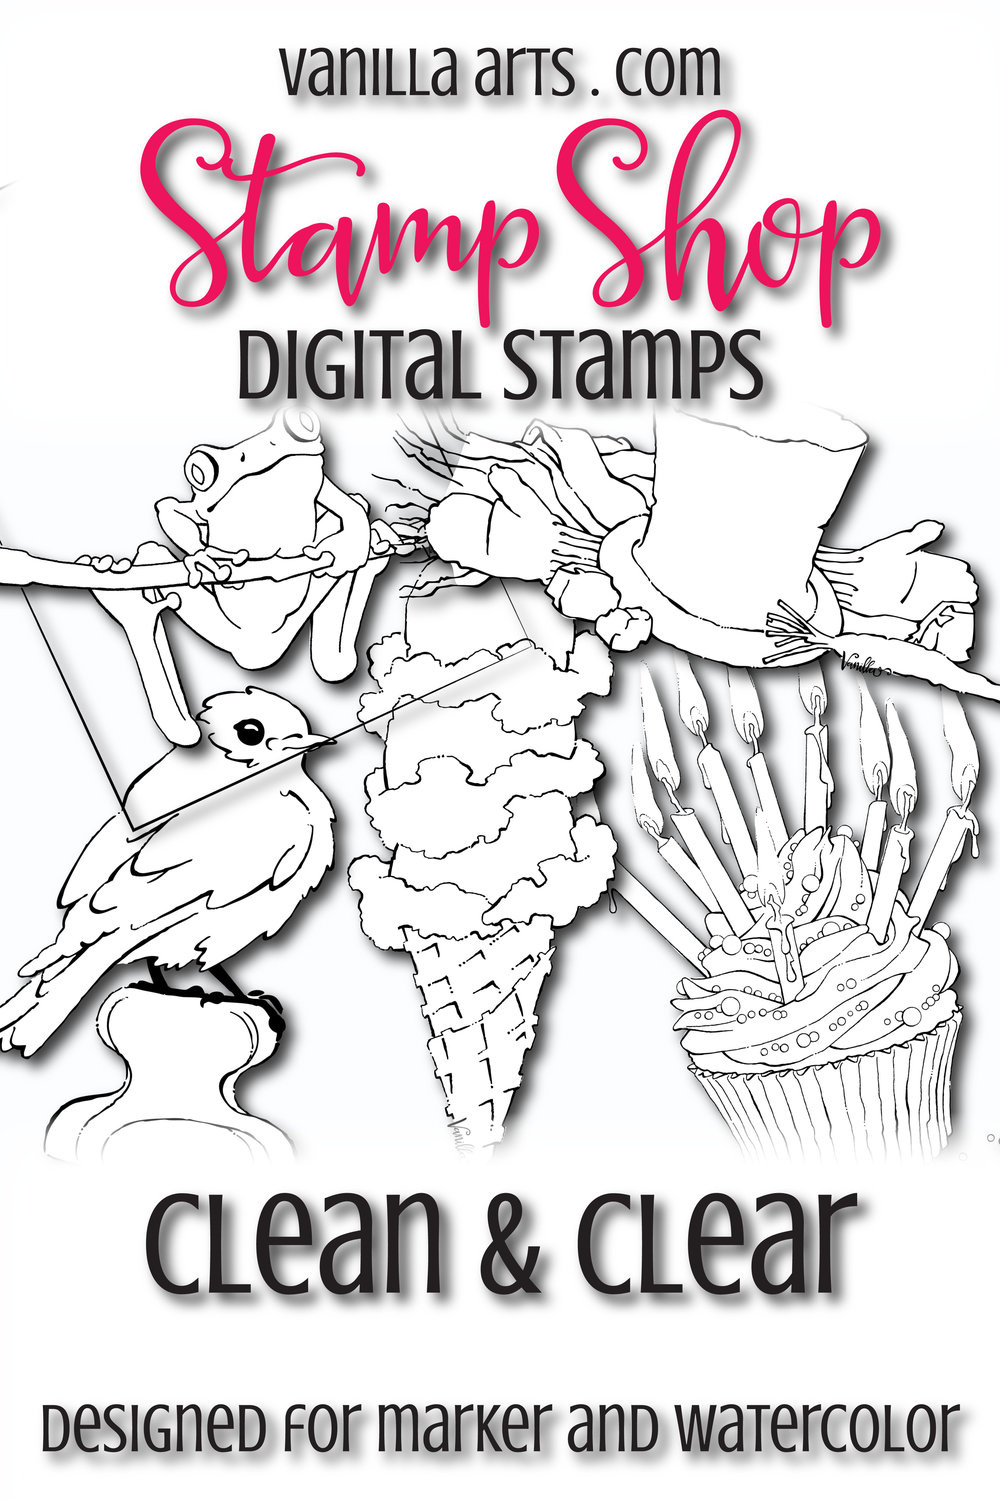 Finally! Digital stamps designed especially for the unique needs of marker colorers and watercolorists | VanillaArts.com